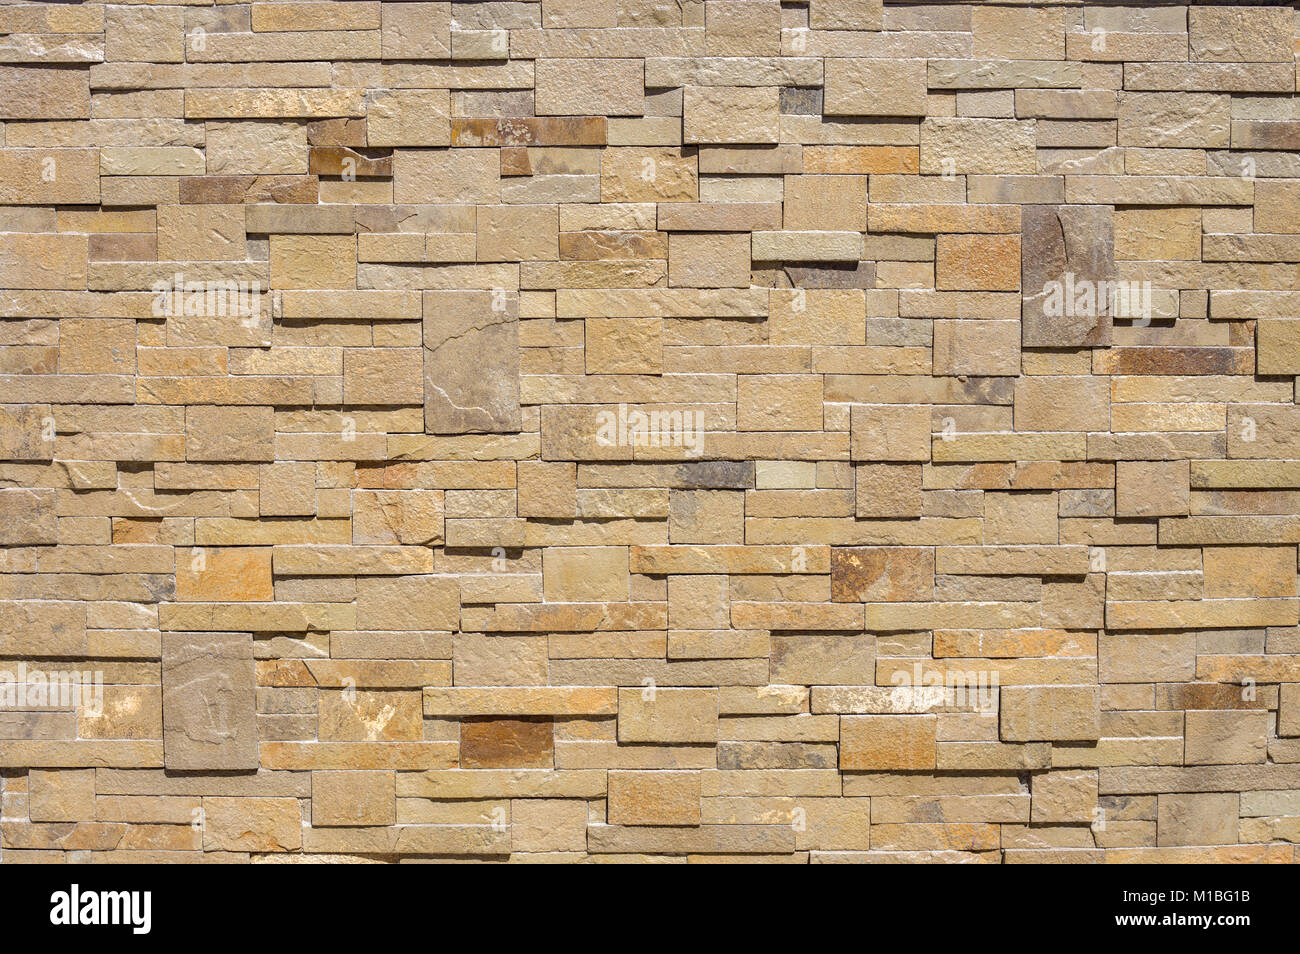 Outstanding Decorative Concrete Blocks Wall Festooning - The Wall ...